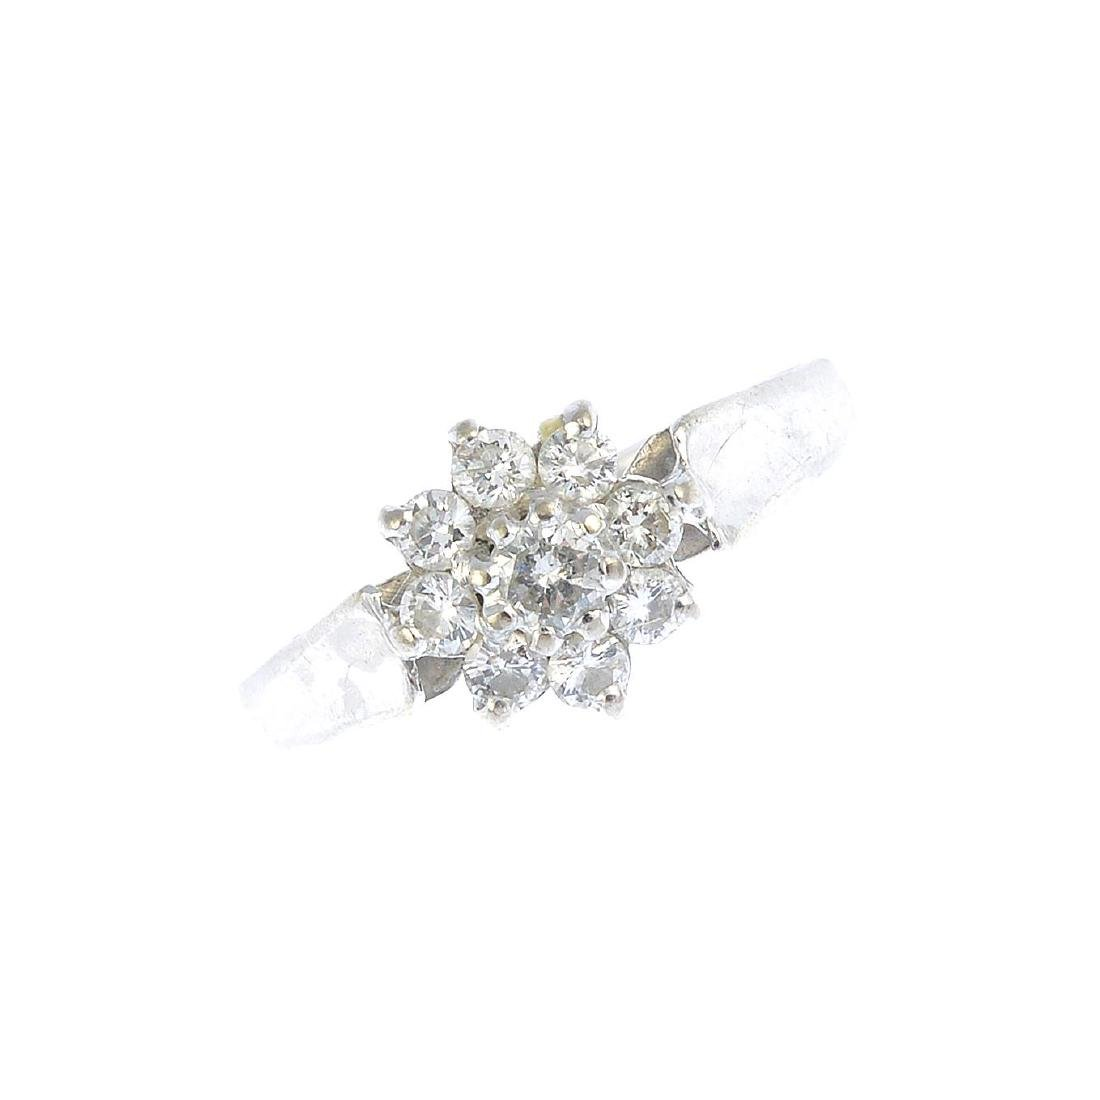 A diamond floral cluster ring. The brilliant-cut